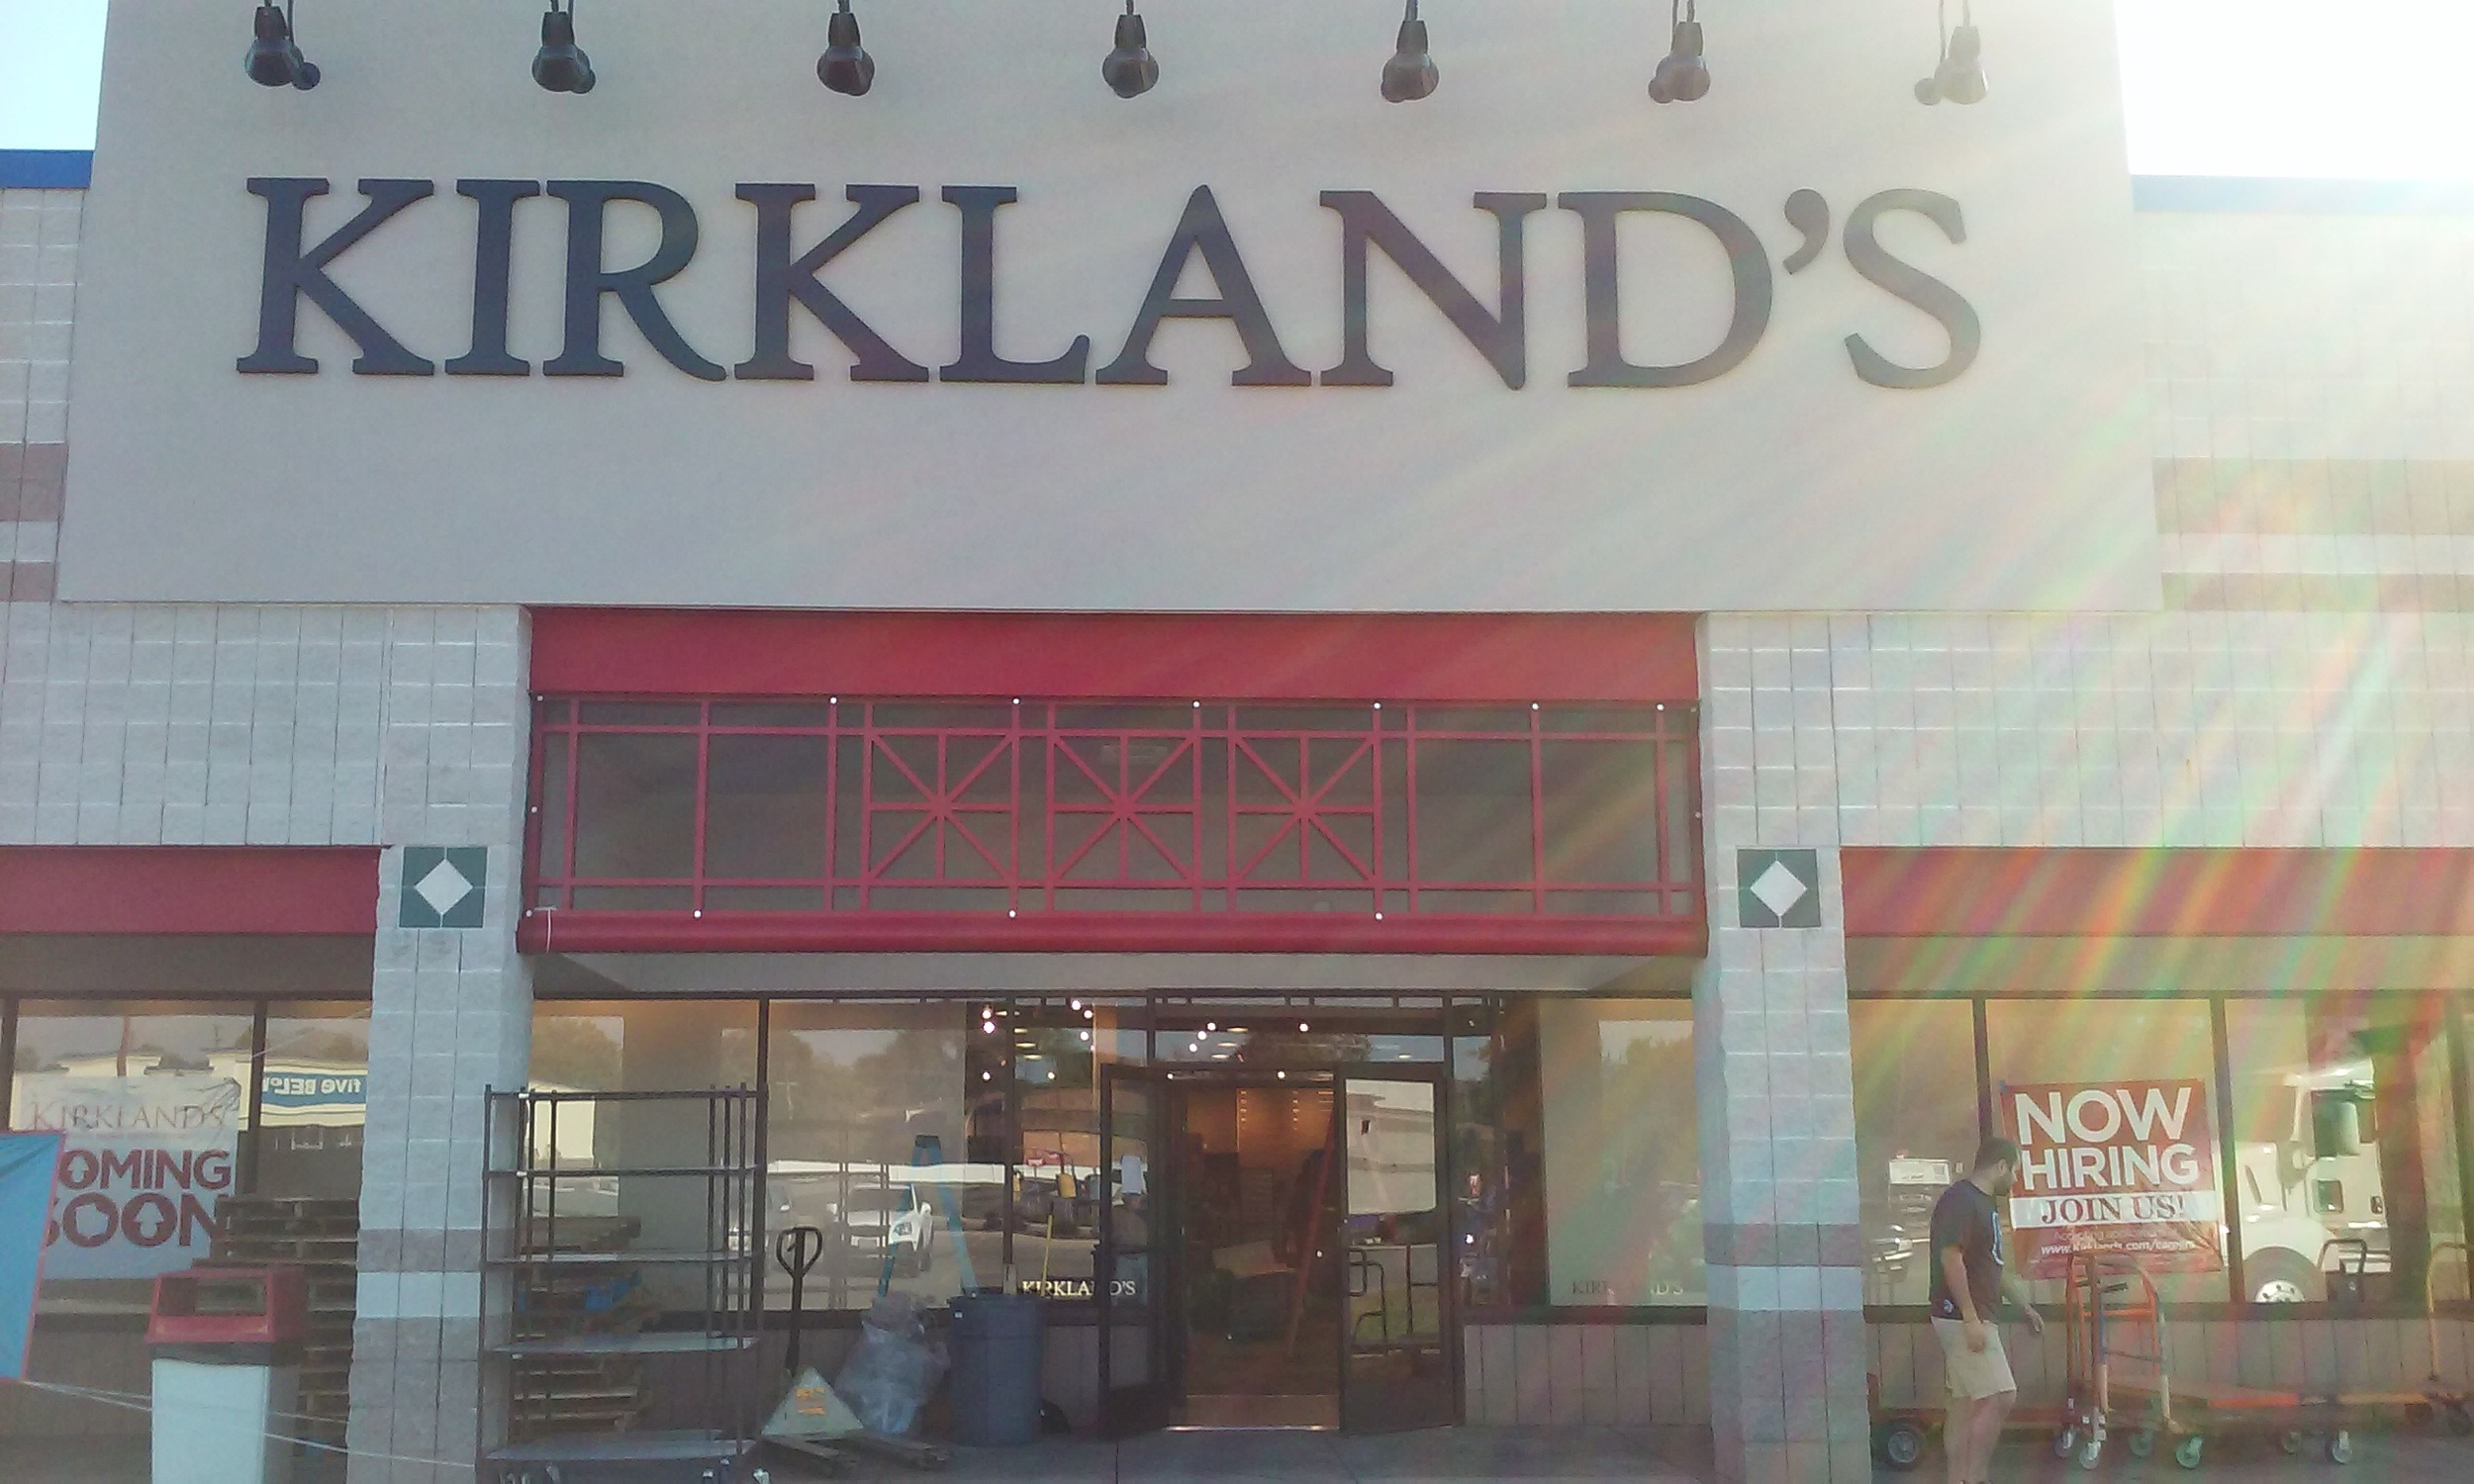 Now Open Kirklands.jpg